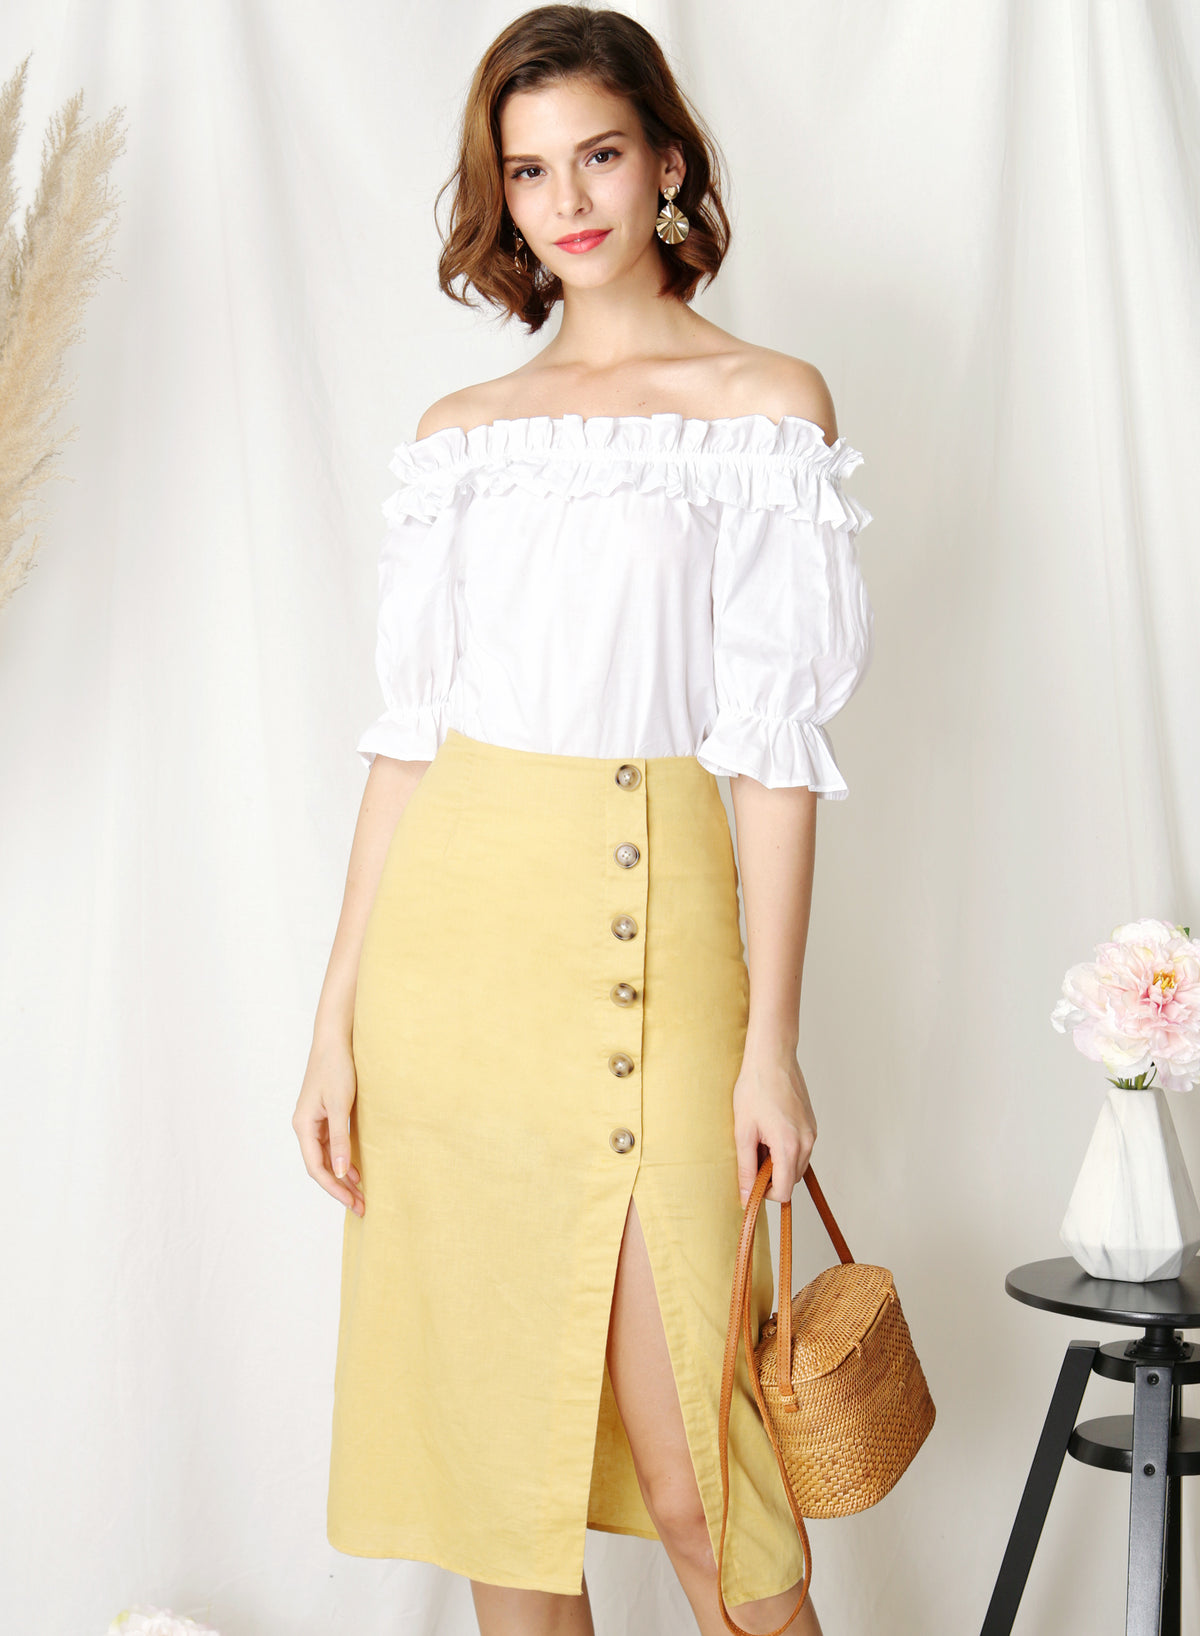 Afloat Off Shoulder Frill Top (White) at $ 34.50 only sold at And Well Dressed Online Fashion Store Singapore